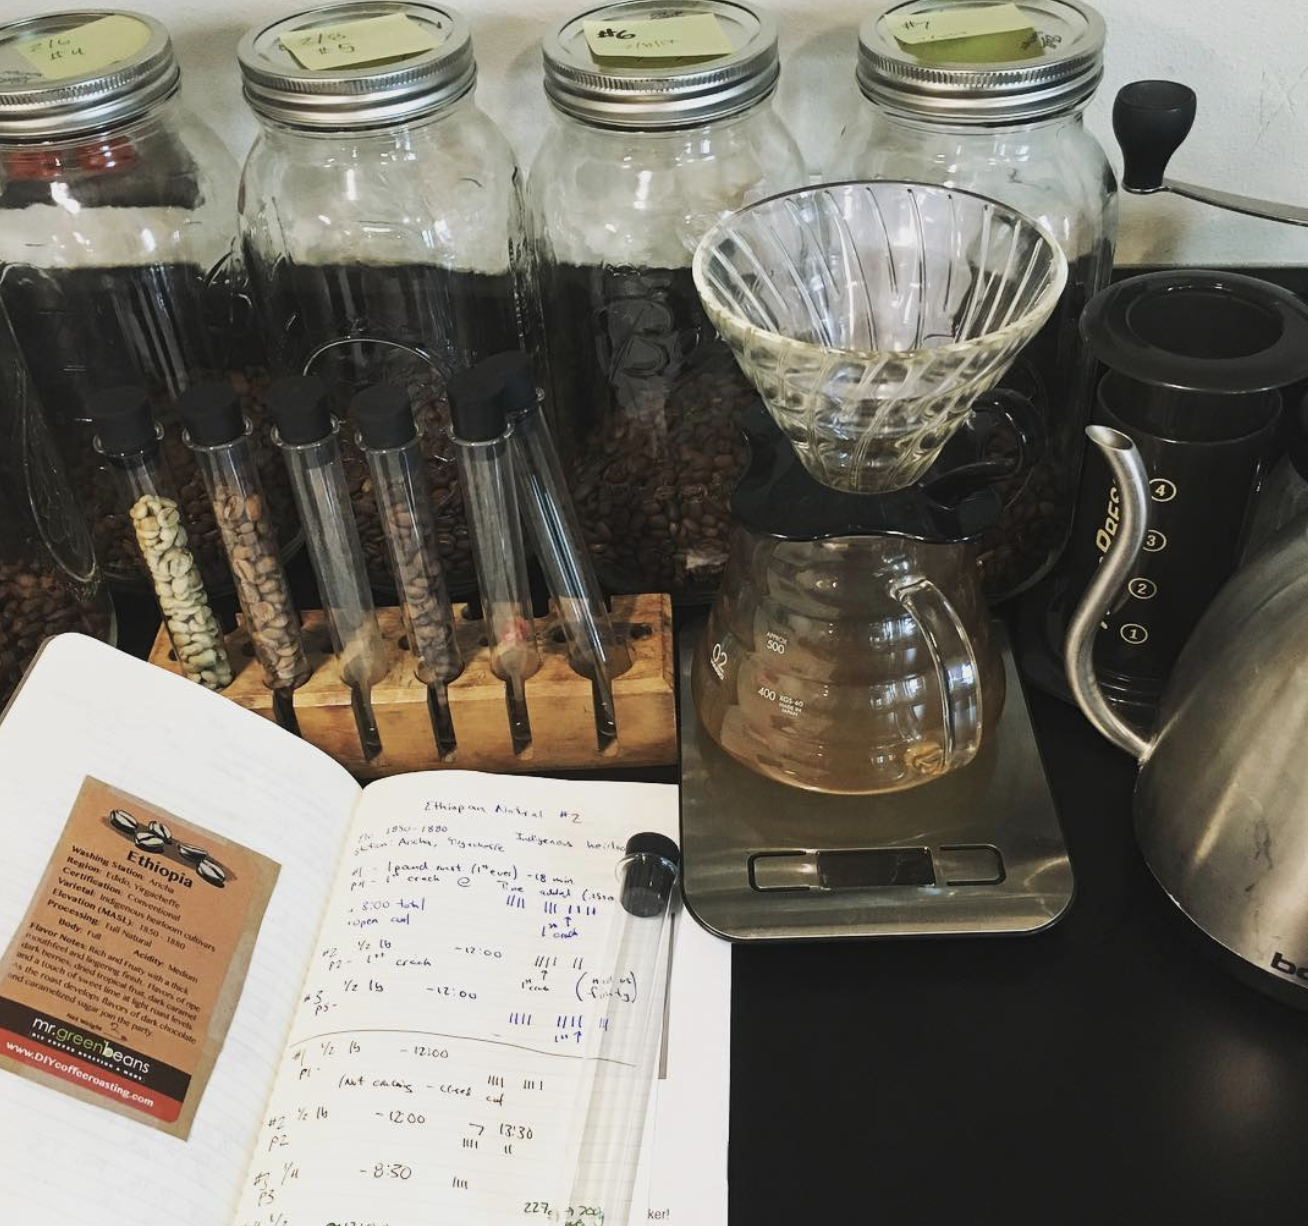 Coffee roasting and brewing experimentation